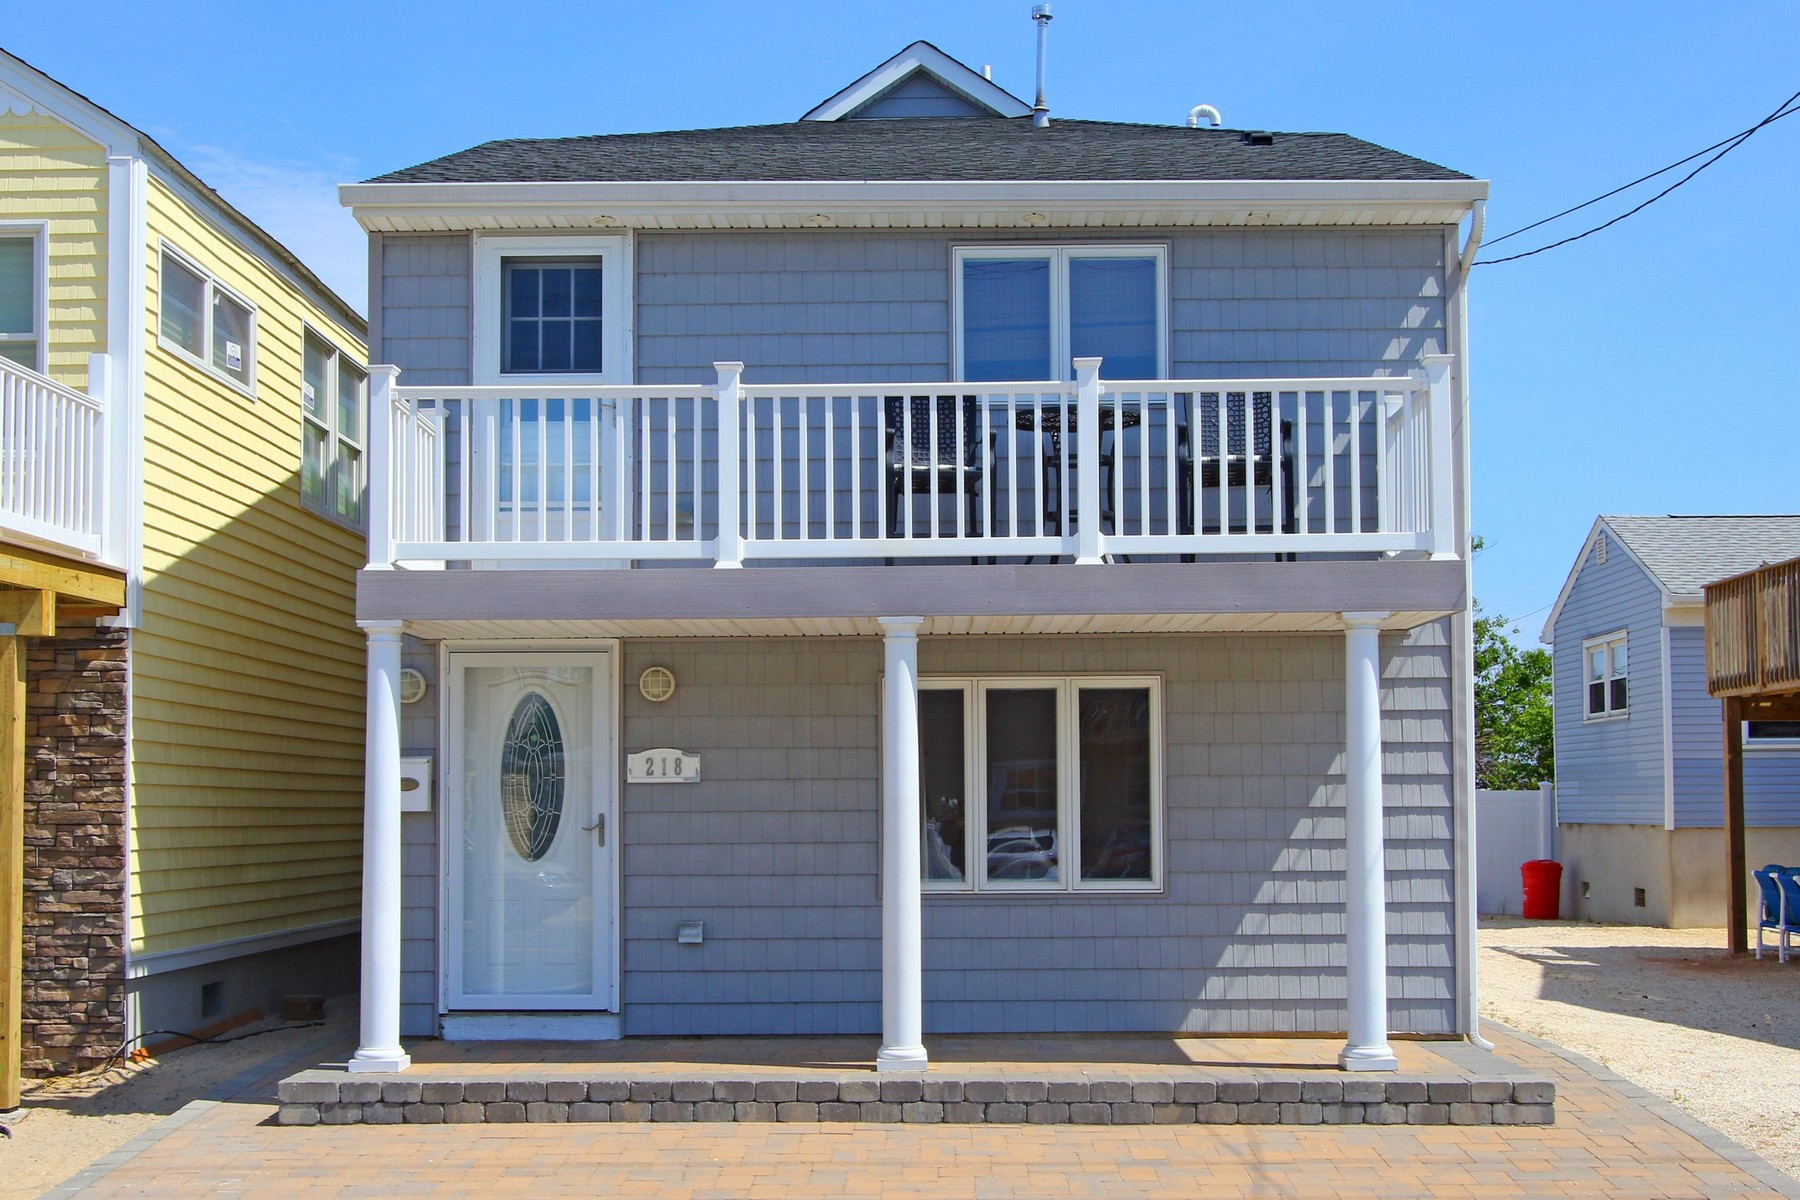 Single Family Home for Sale at 218 Hiering Ave Seaside Heights, New Jersey 08751 United States